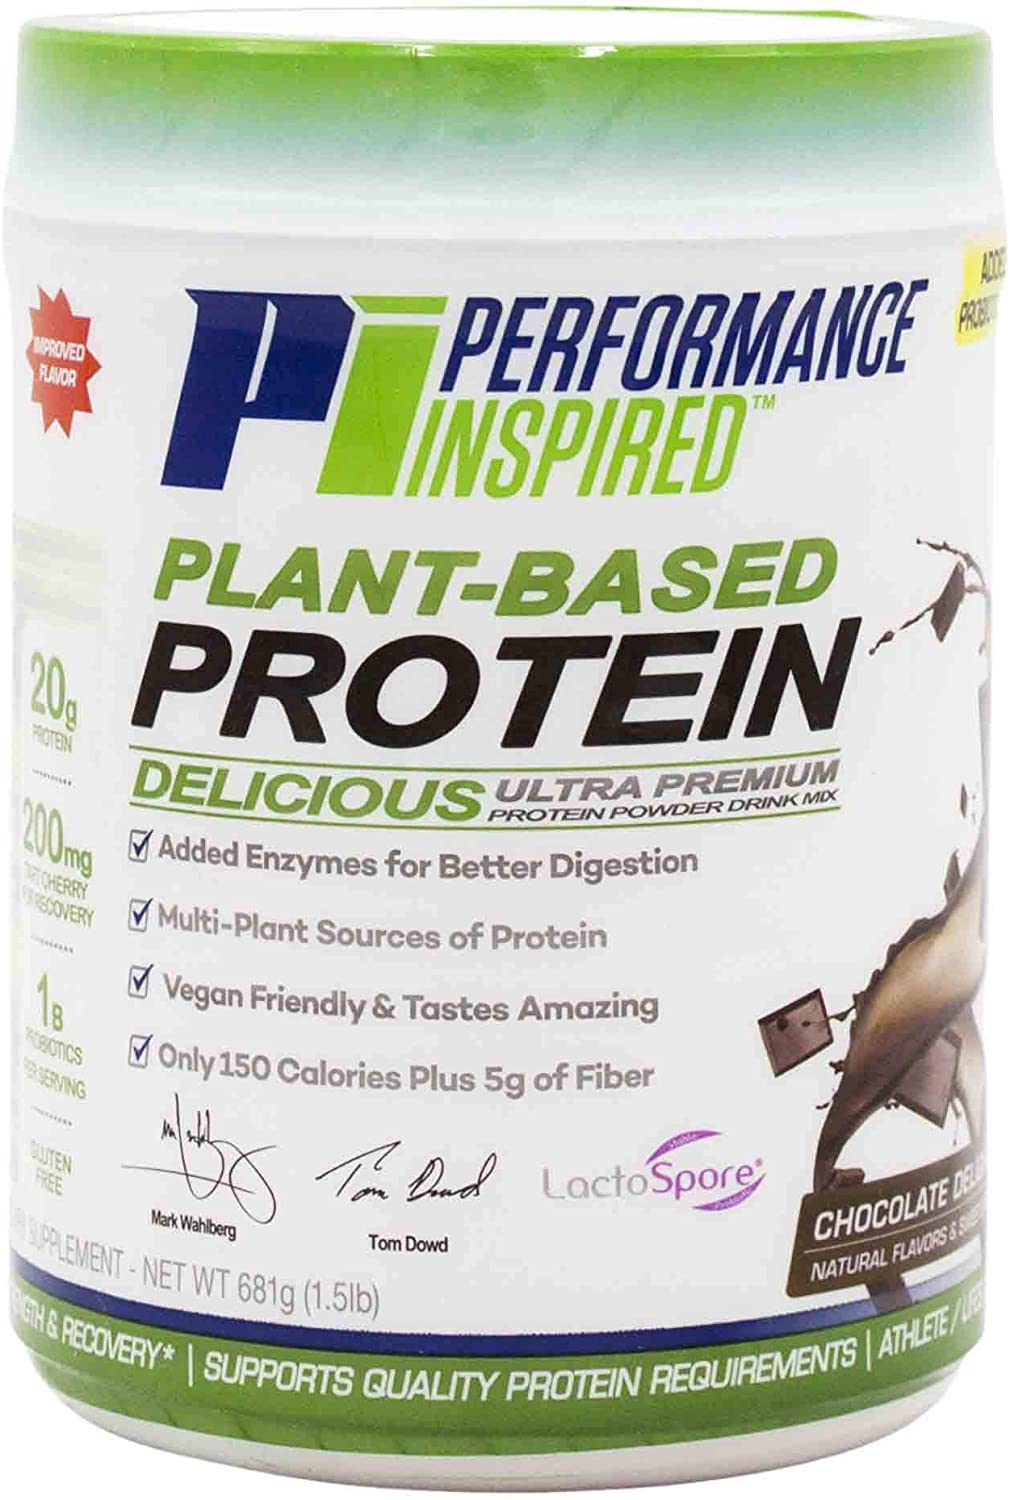 Performance Inspired Nutrition Plant Protein Powder - All Natural - 20G - 1B Probiotics - Digestive Enzymes - Fiber Packed - G Free - Chocolate Delight - 1.5lb